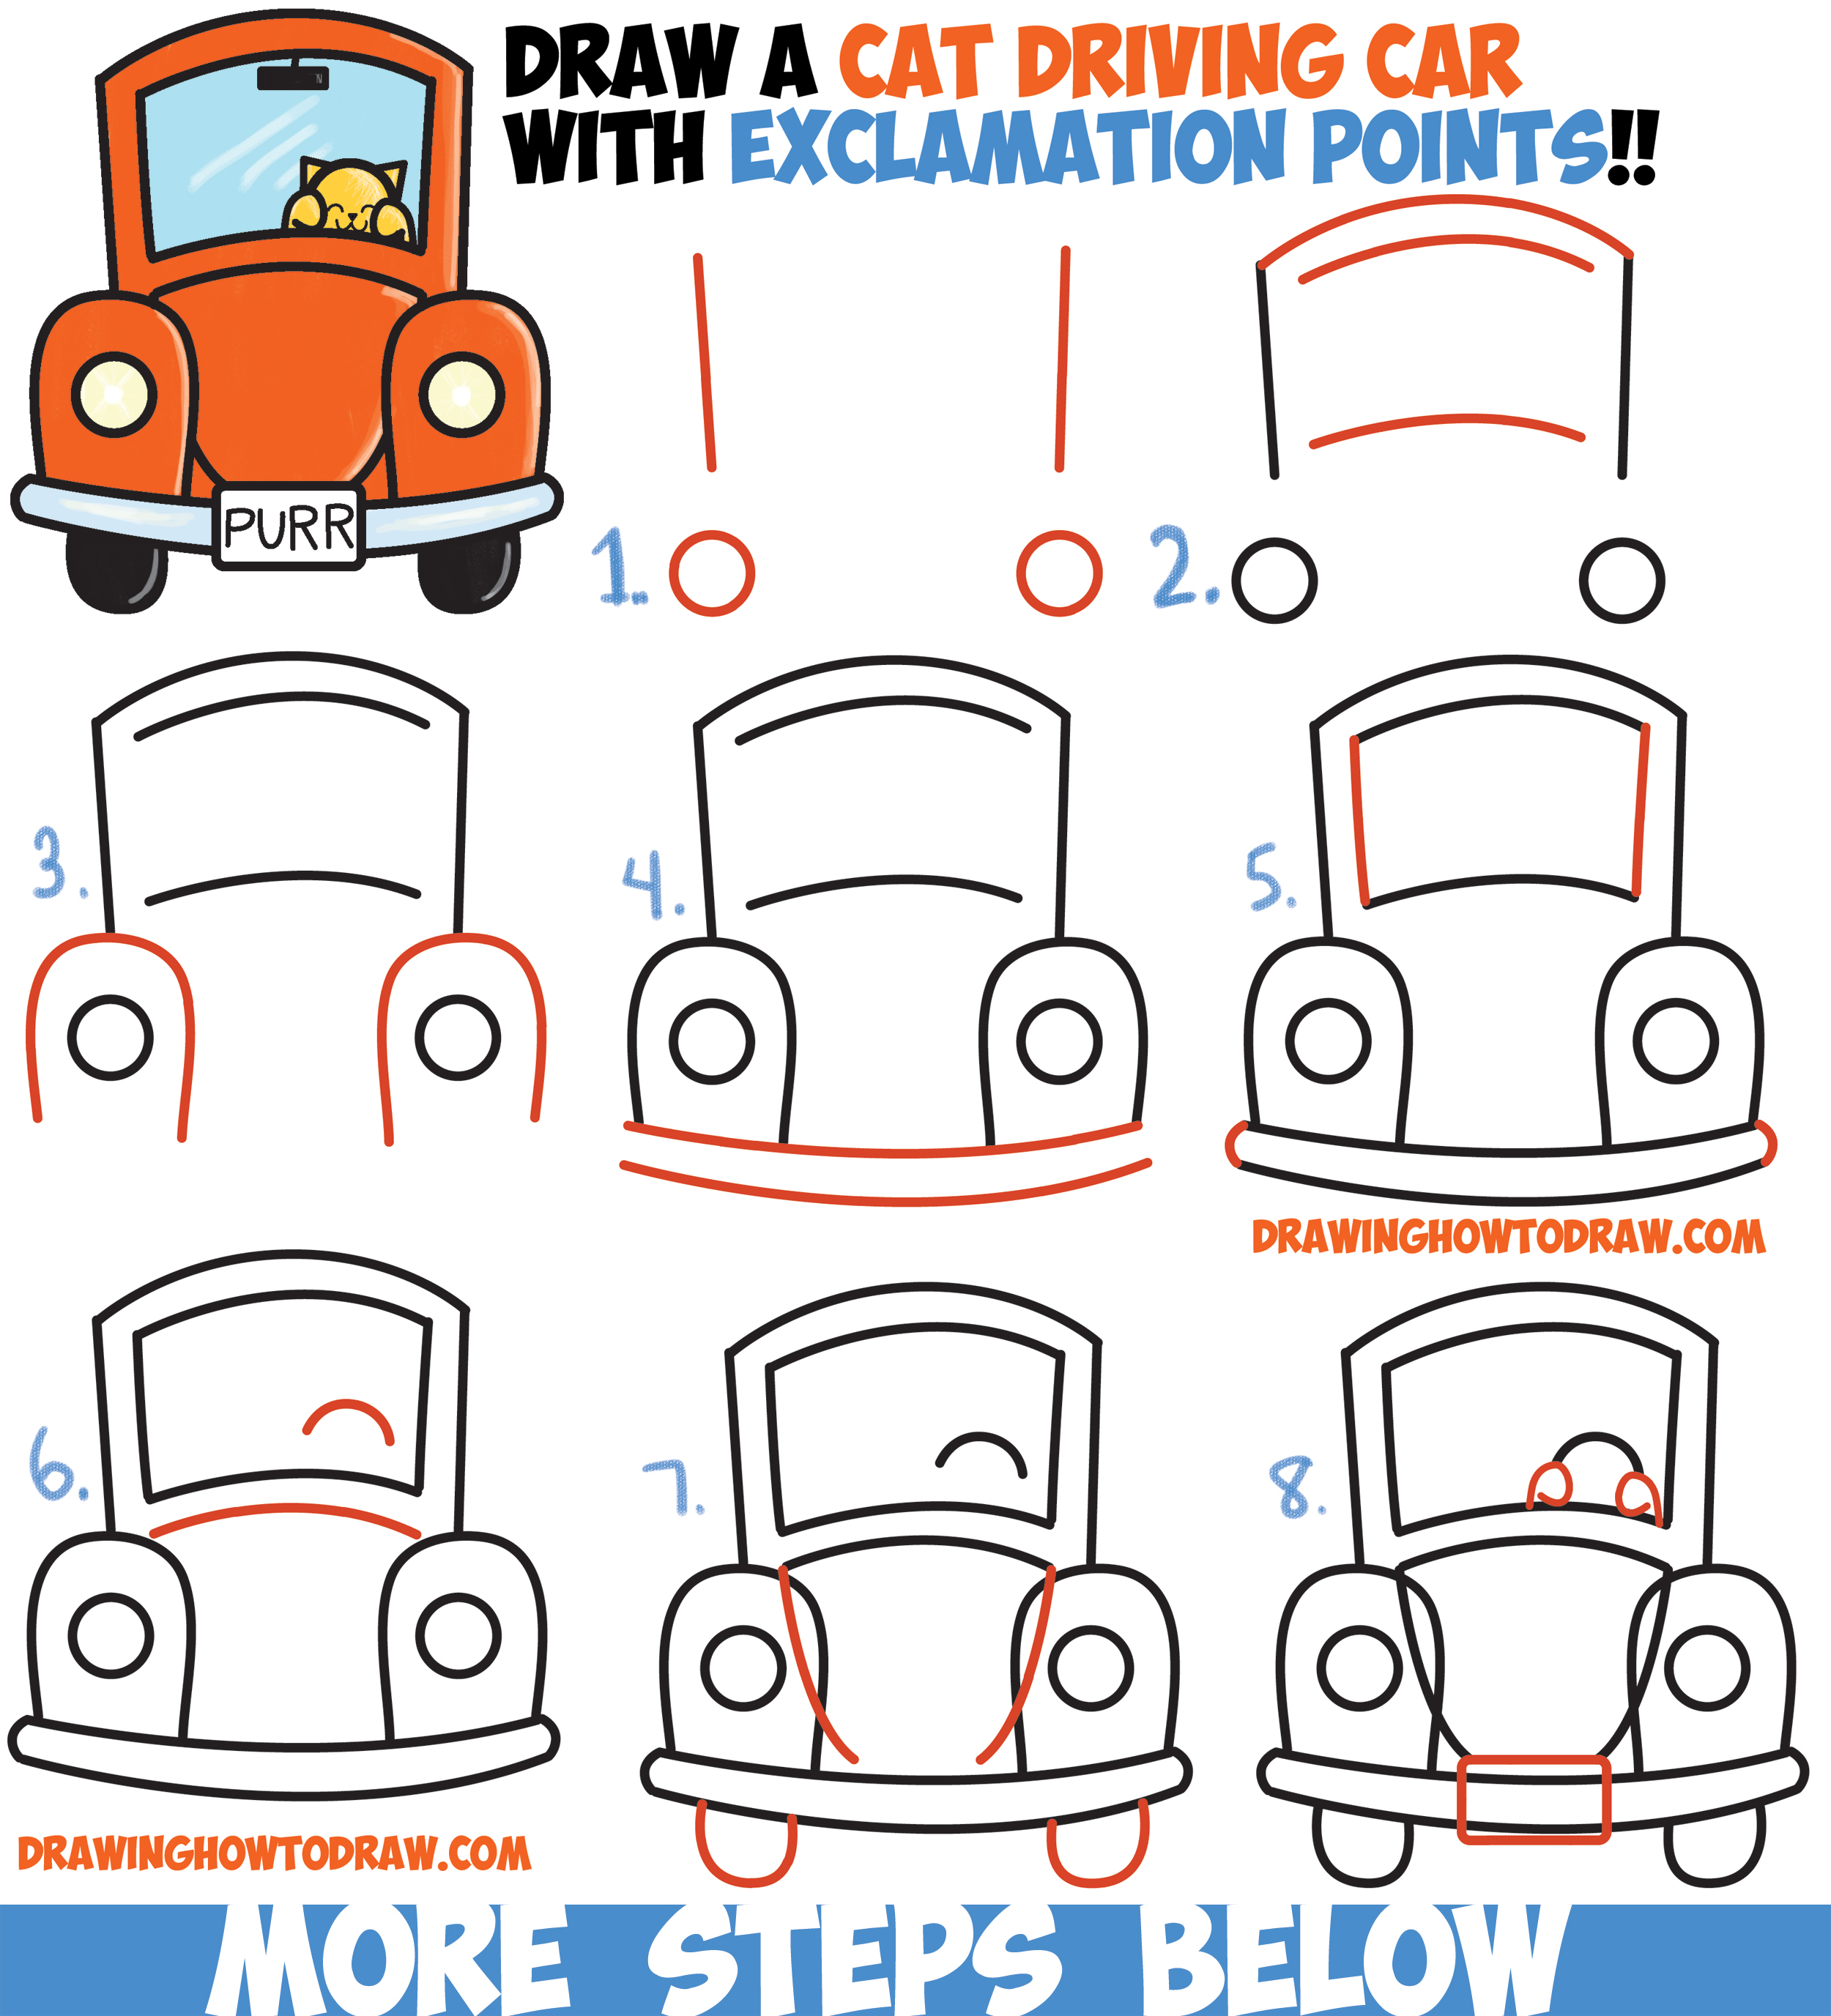 How to Draw Cute Cartoon Cat Driving a Car from Exclamation Points Easy Step by Step Drawing Tutorial for Kids